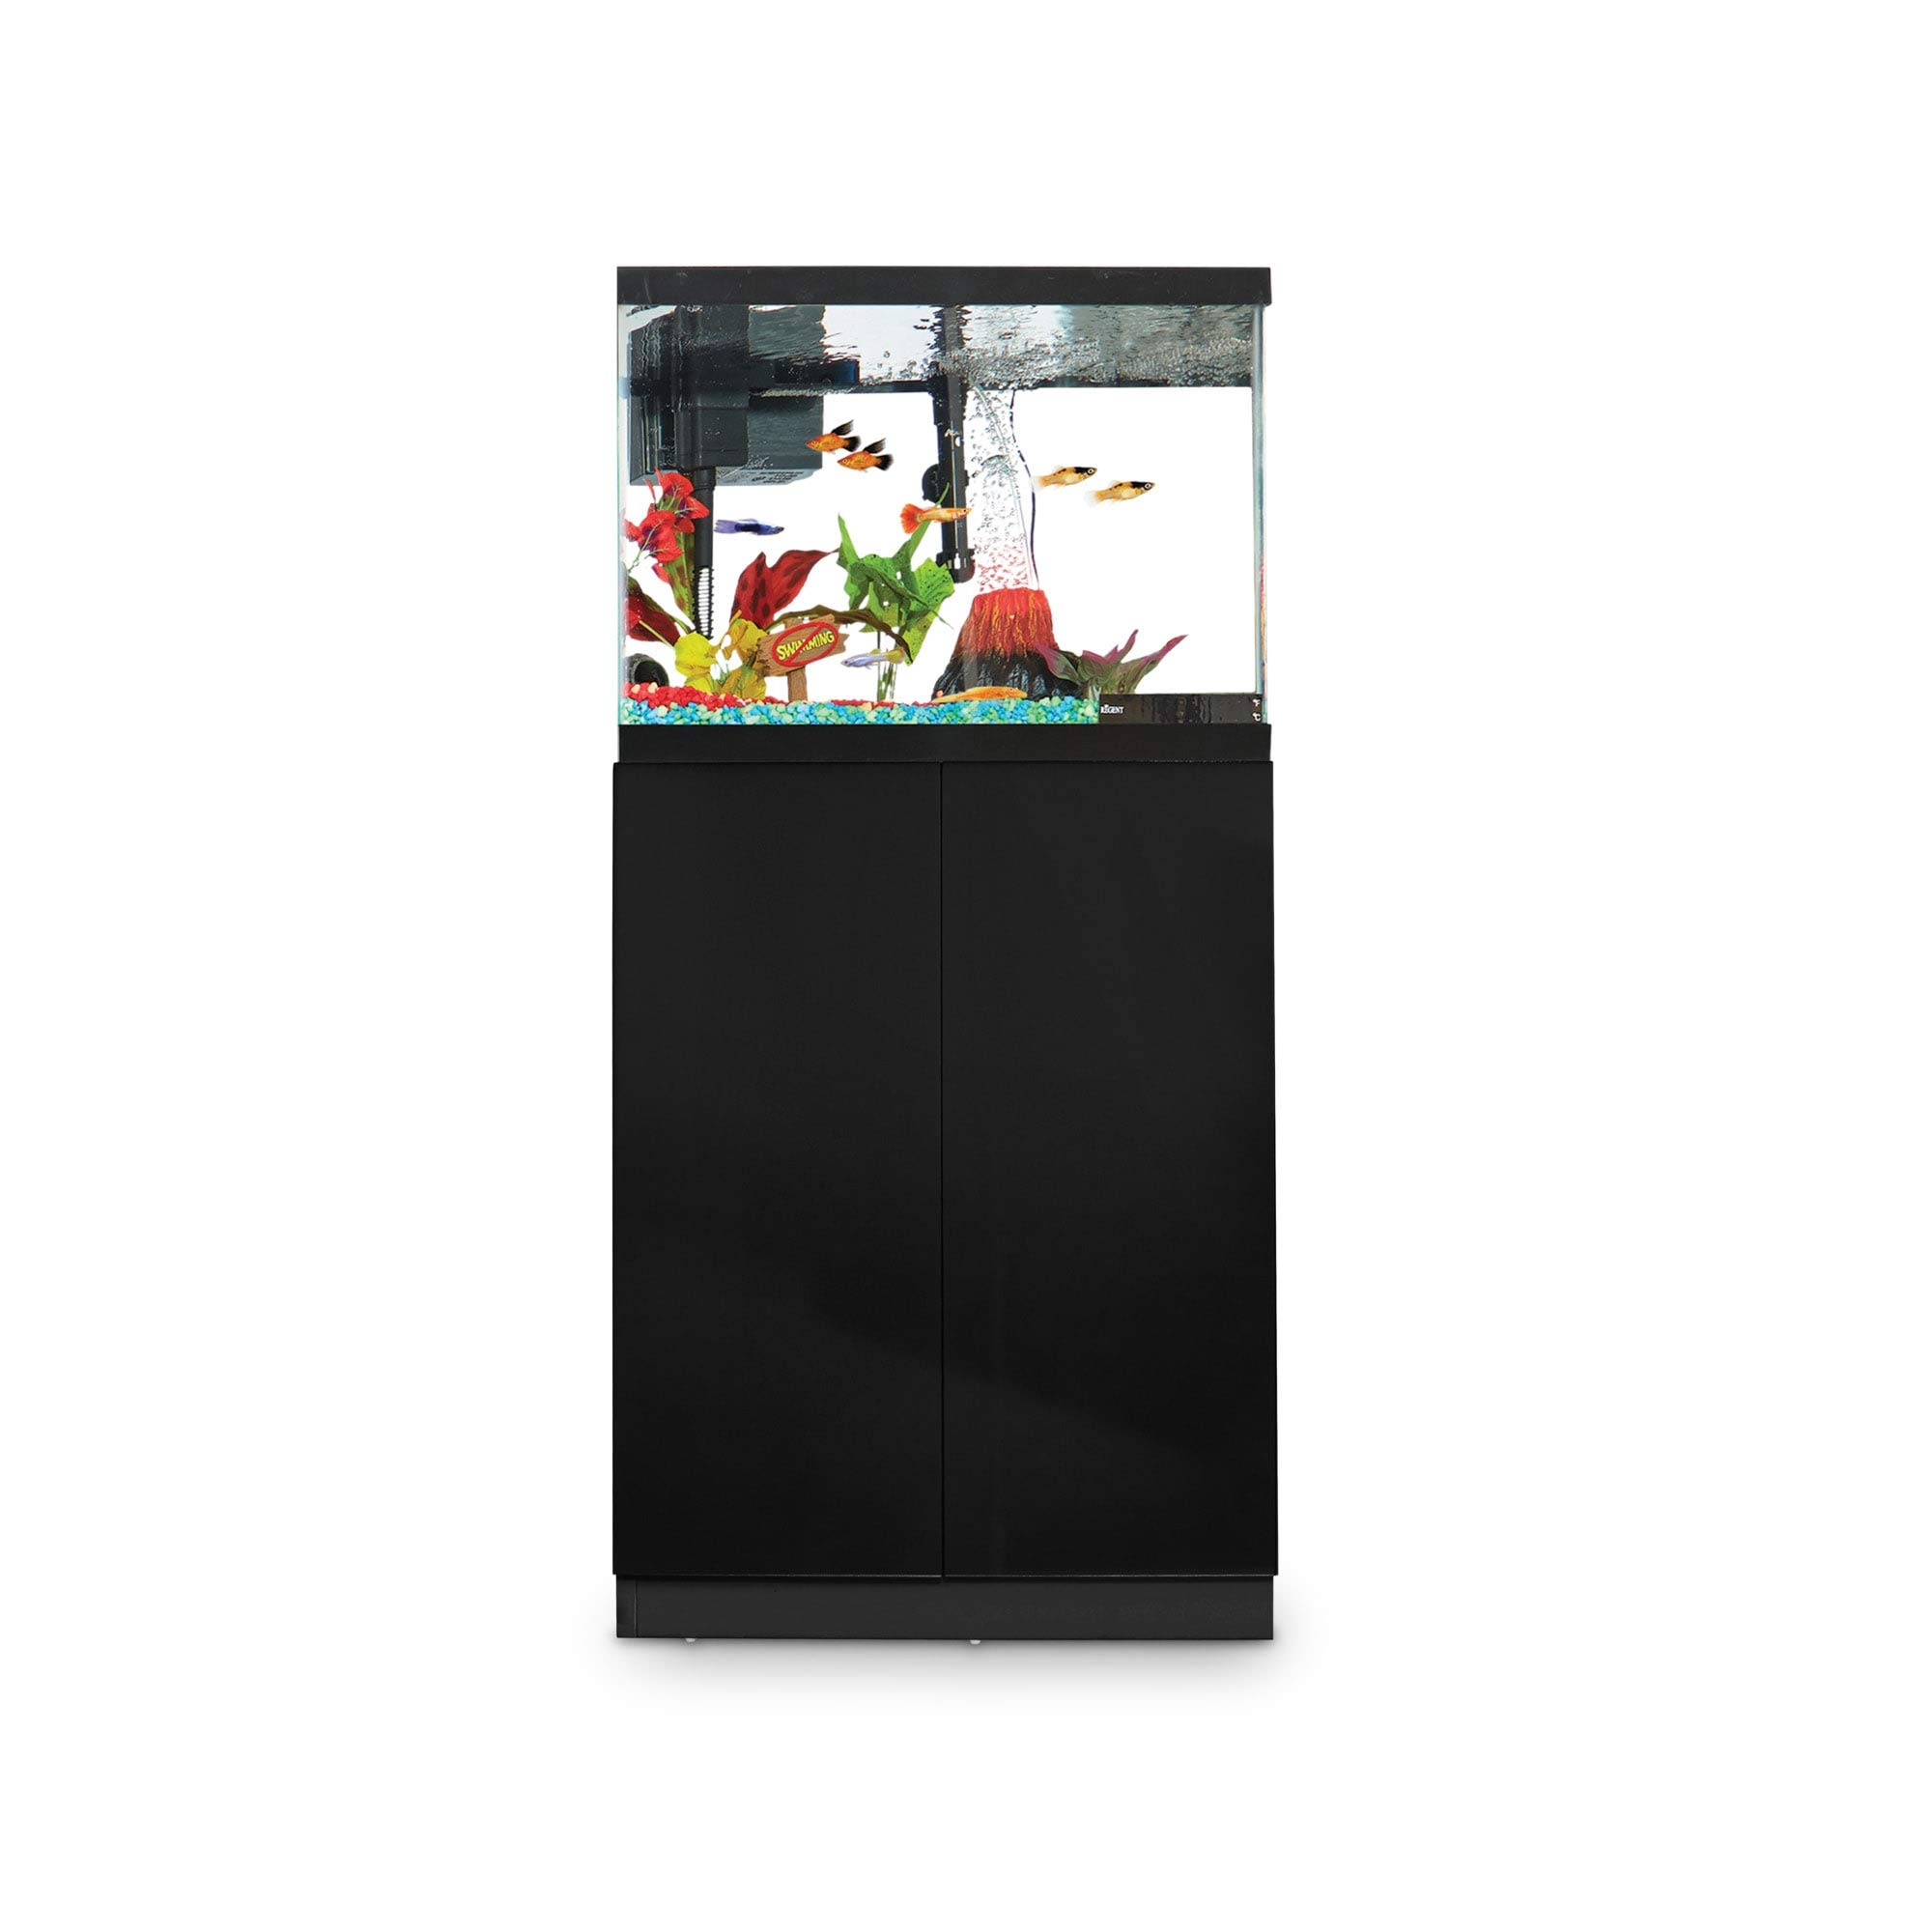 Imagitarium Black Gloss Fish Tank Stand, Up to 20 Gal.